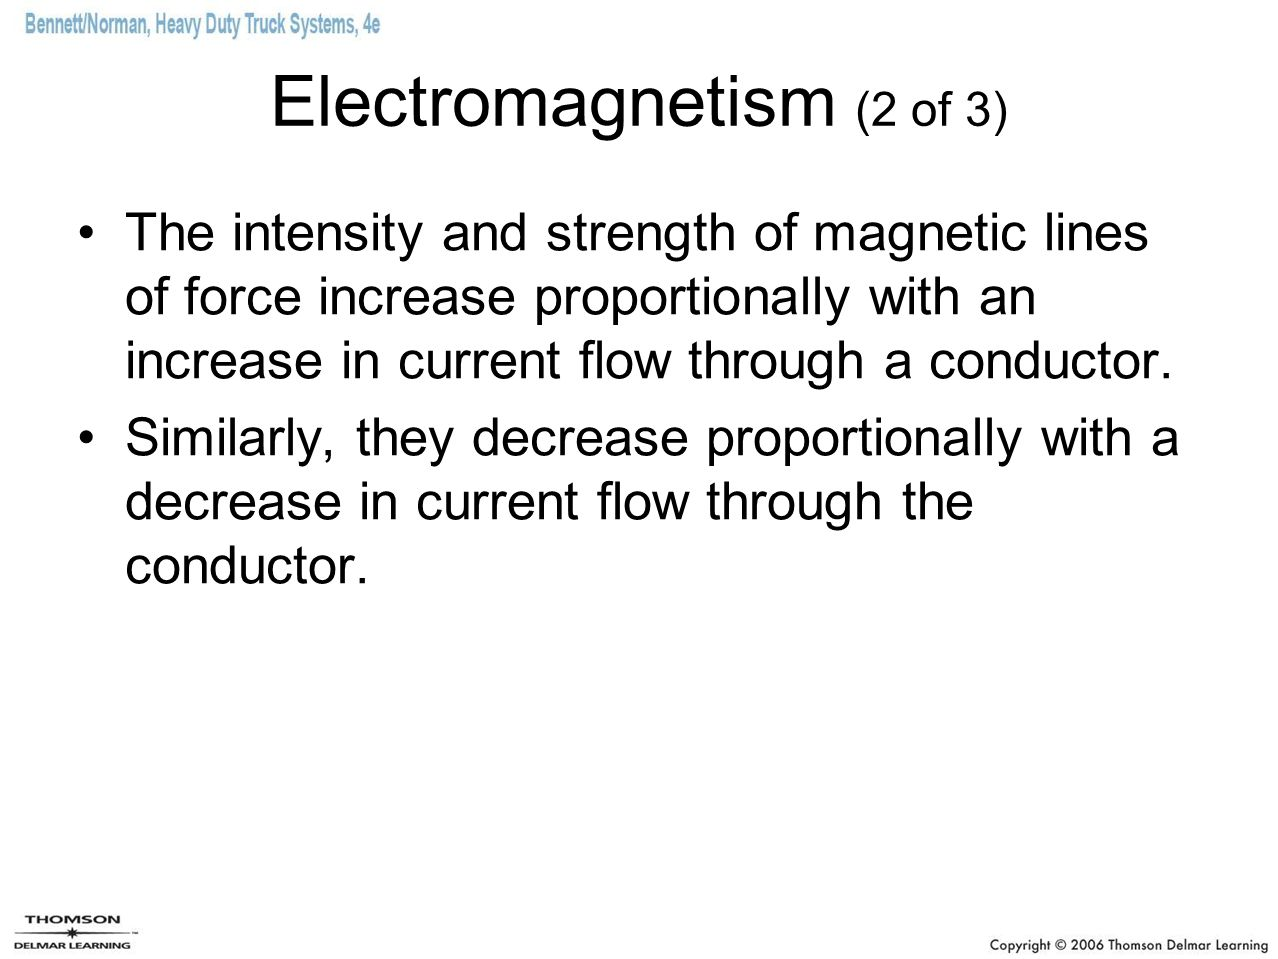 Electromagnetism (2 of 3) The intensity and strength of magnetic lines of force increase proportionally with an increase in current flow through a conductor.